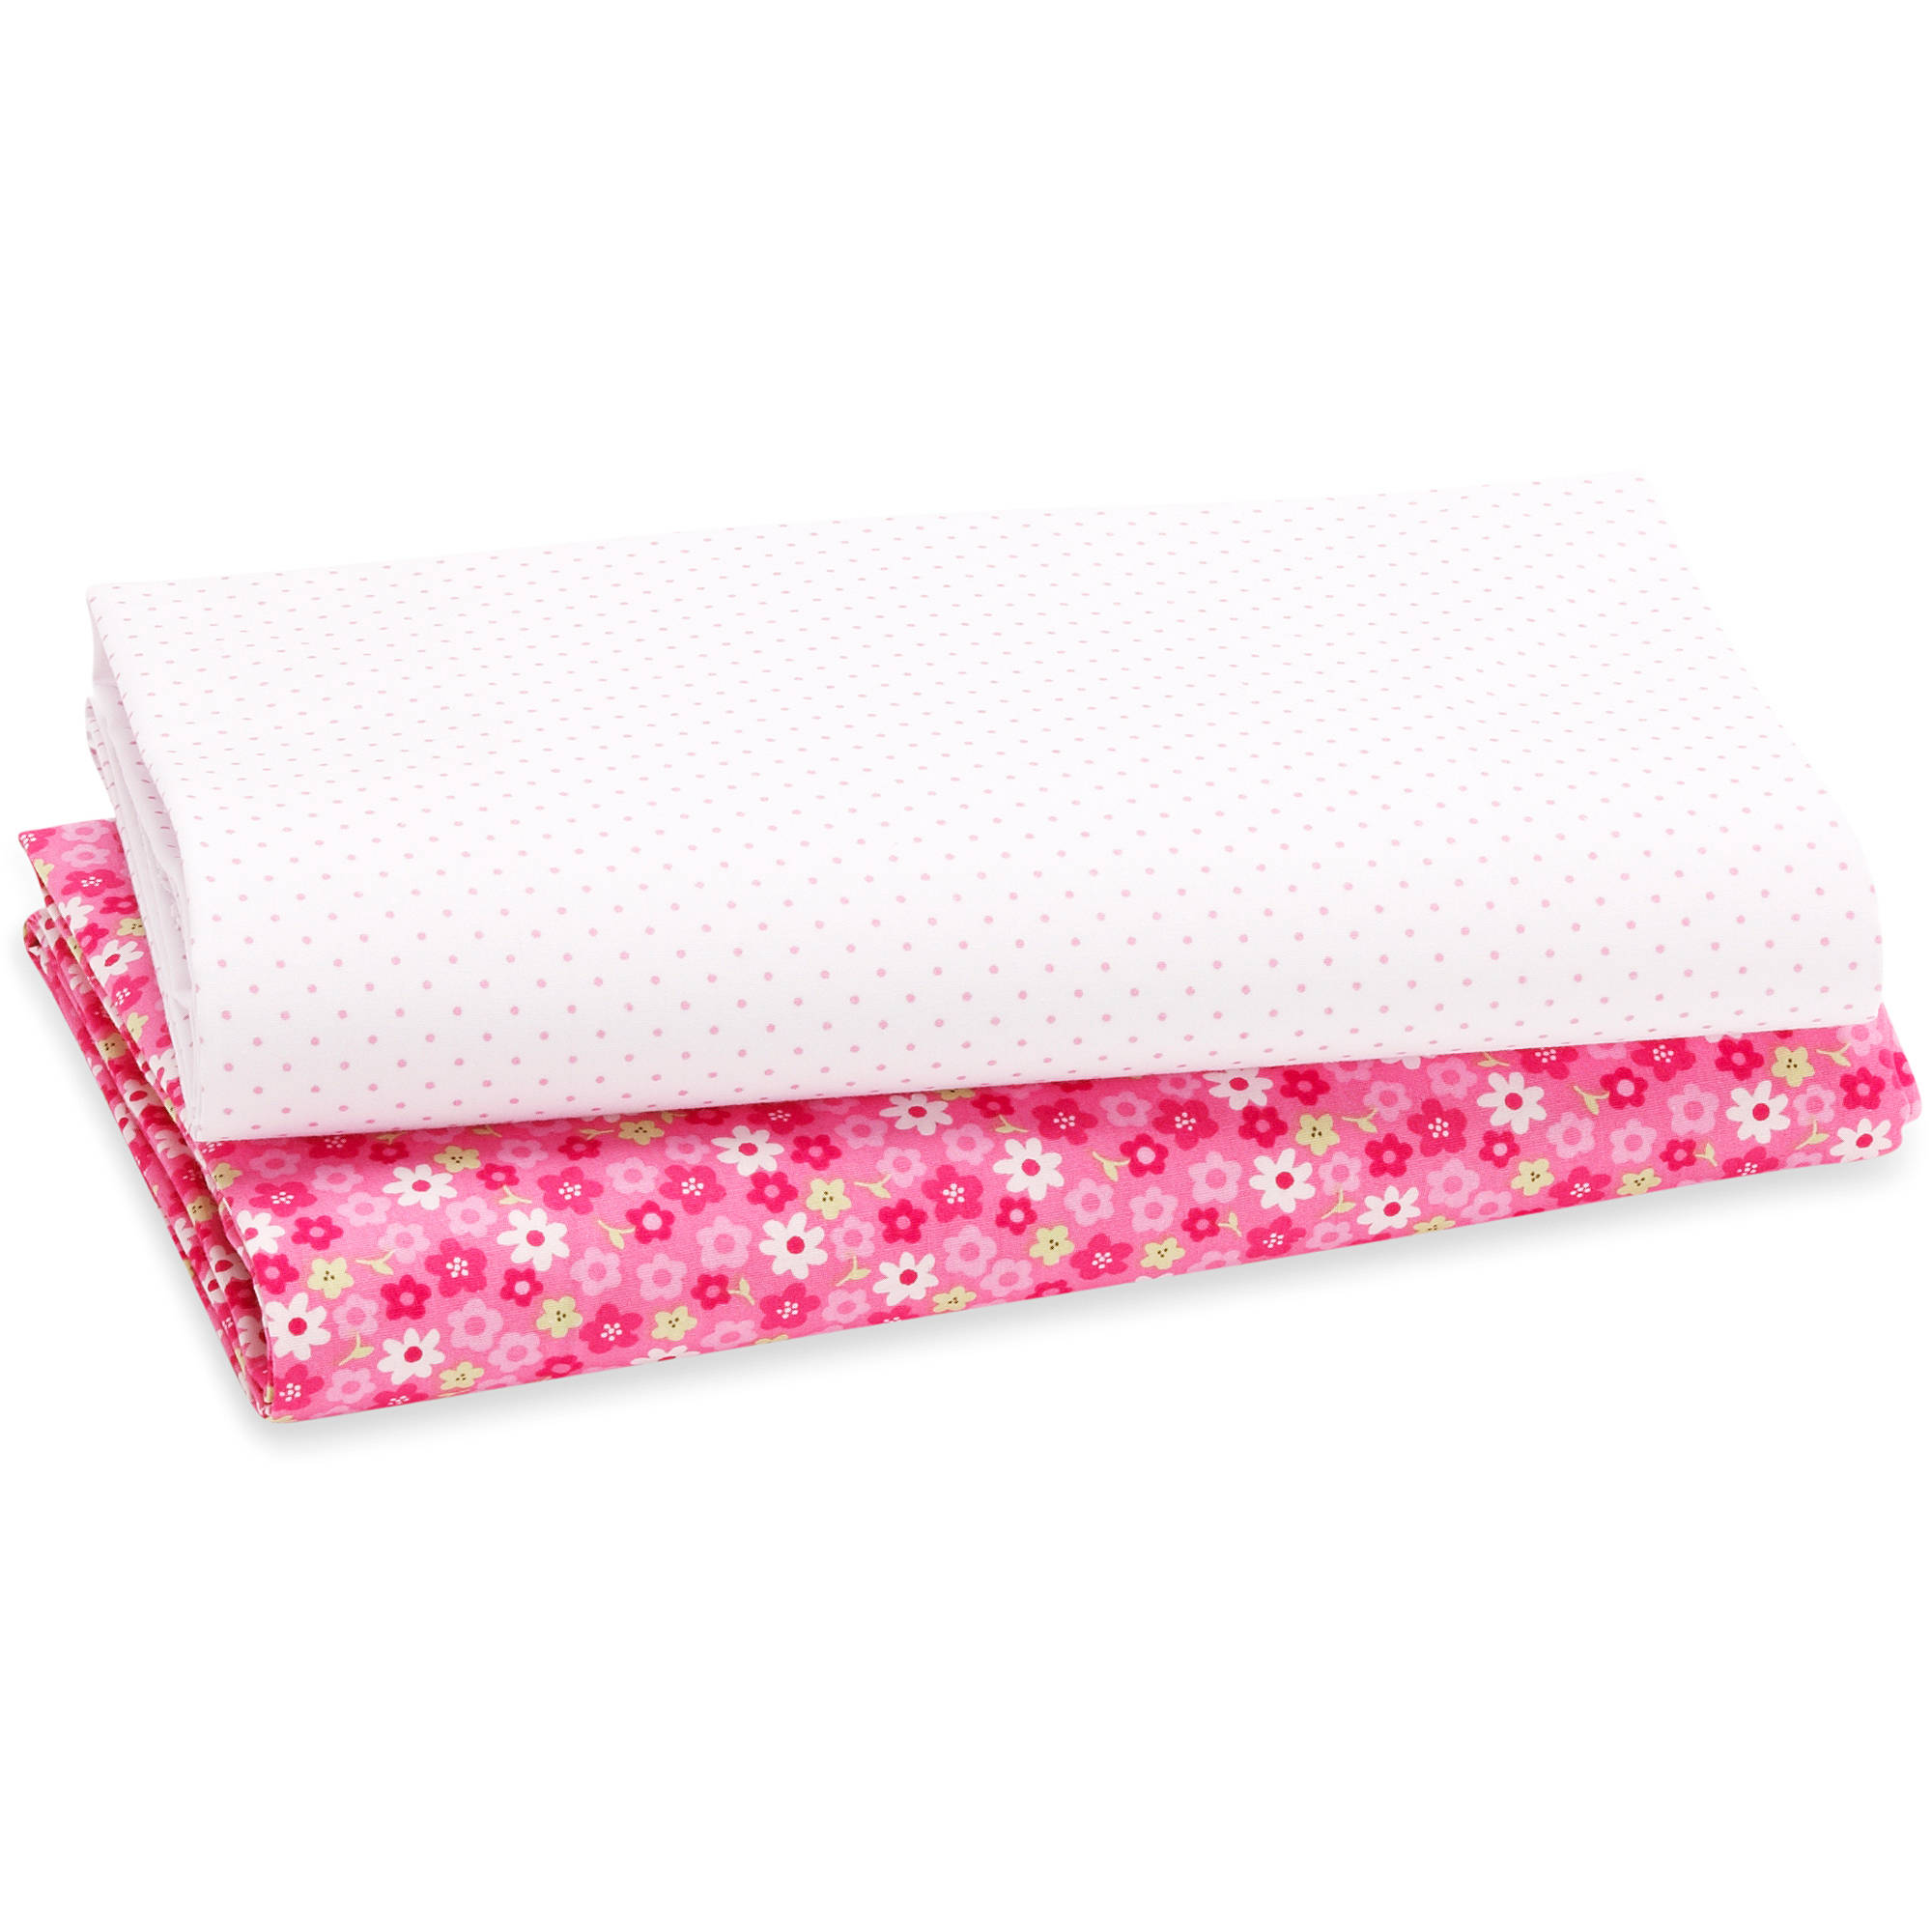 Child of Mine - 2-Pack Crib Sheets, Bloom